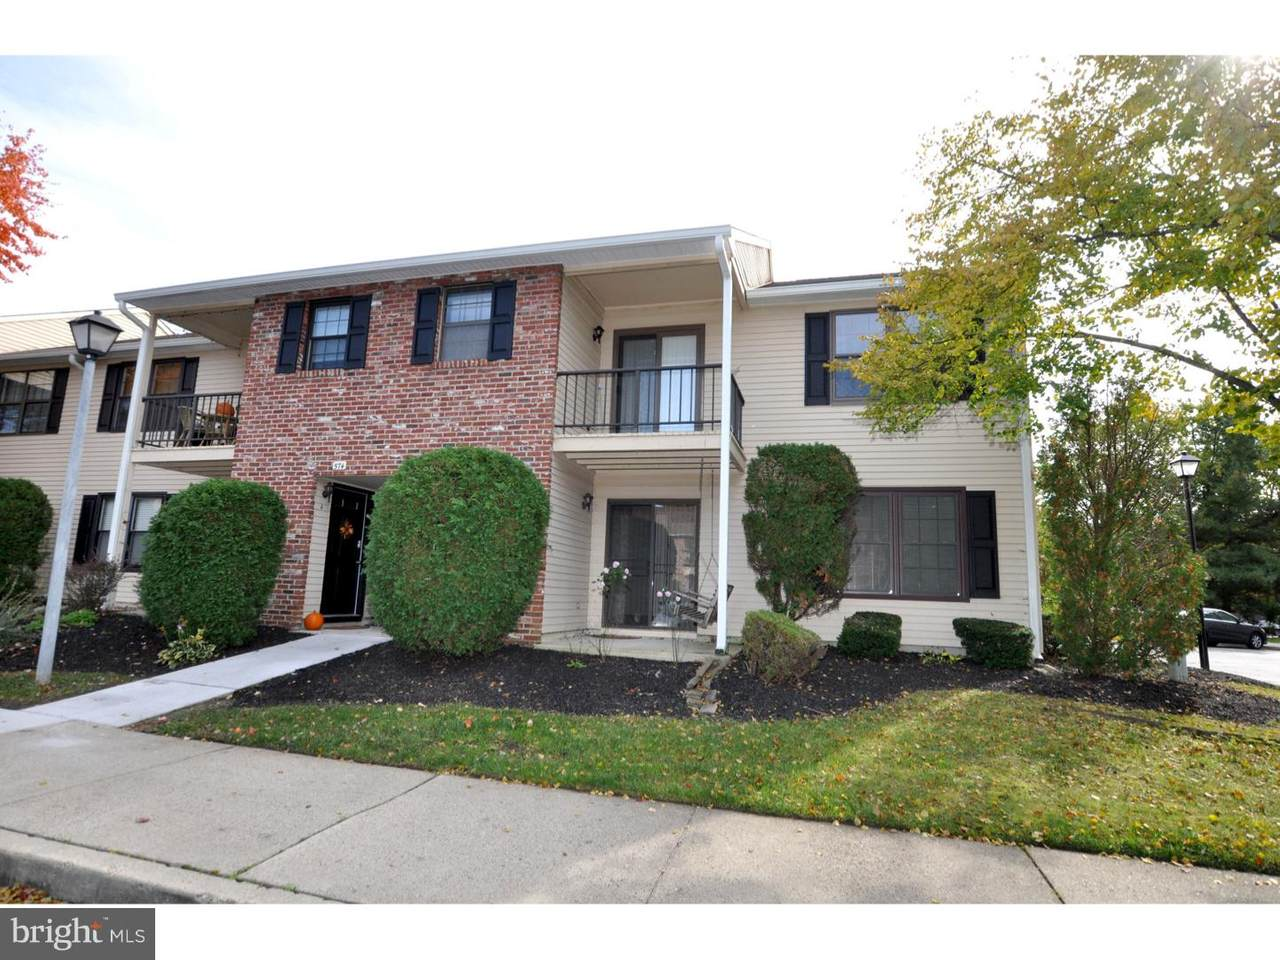 576A Willow Turn - Photo 1